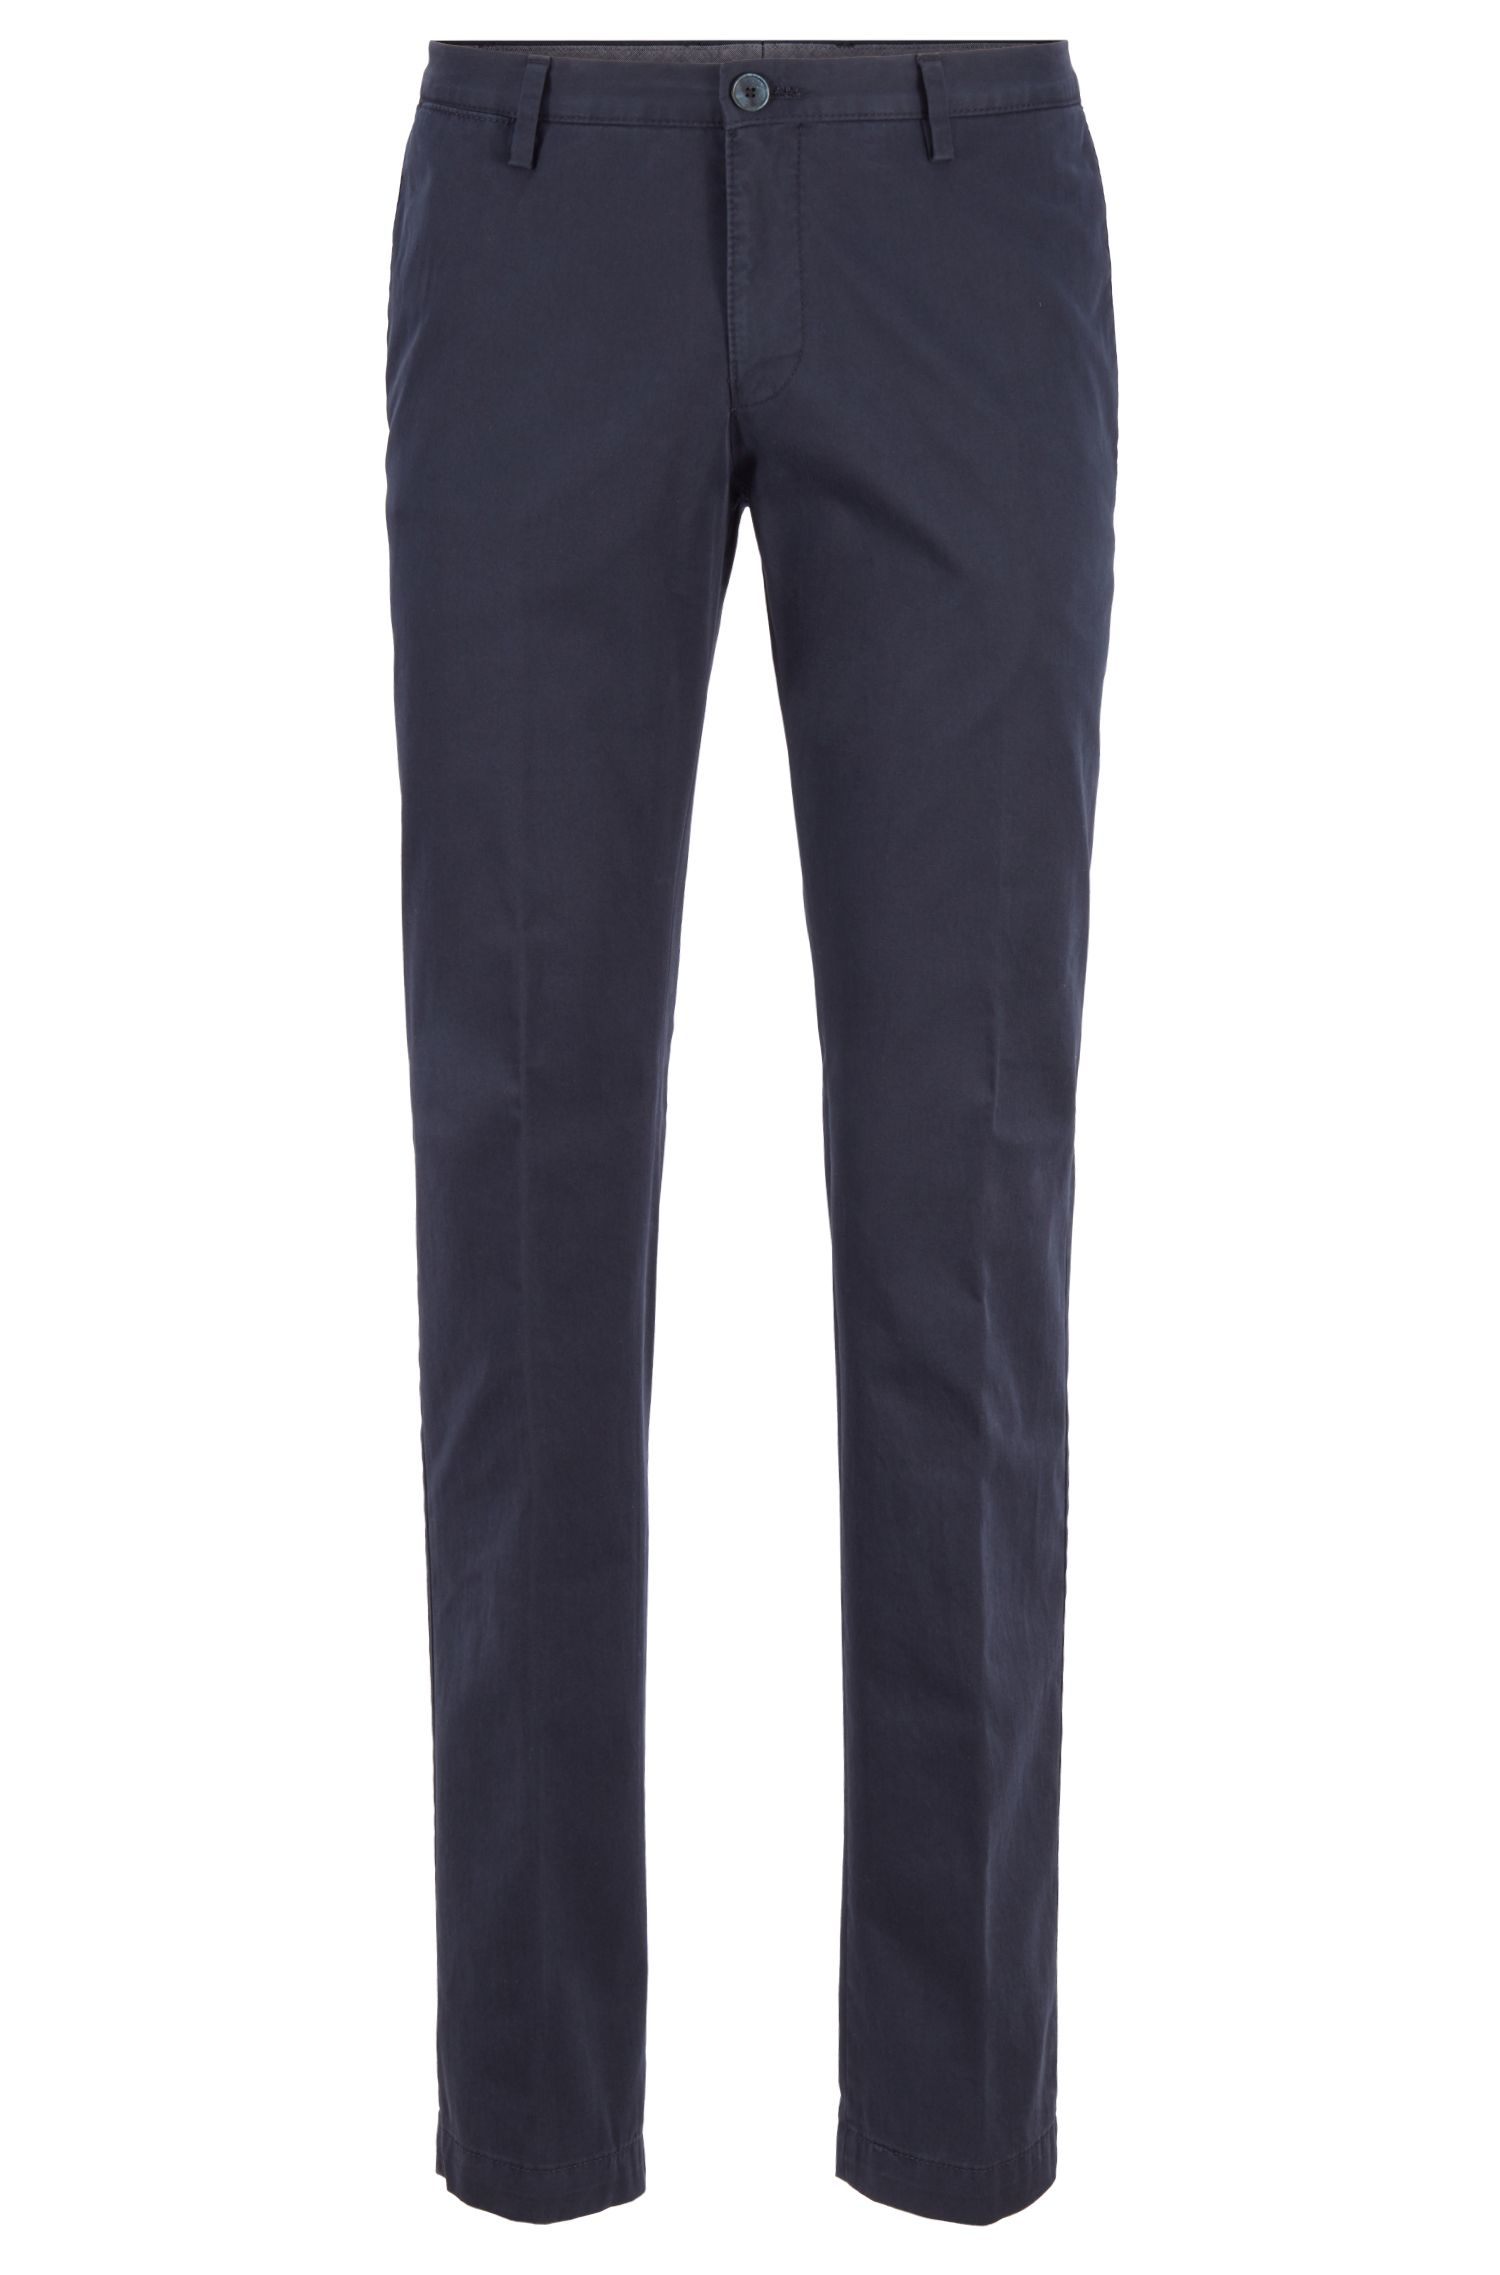 Hugo Boss - Slim-fit trousers in garment-dyed stretch cotton - 1